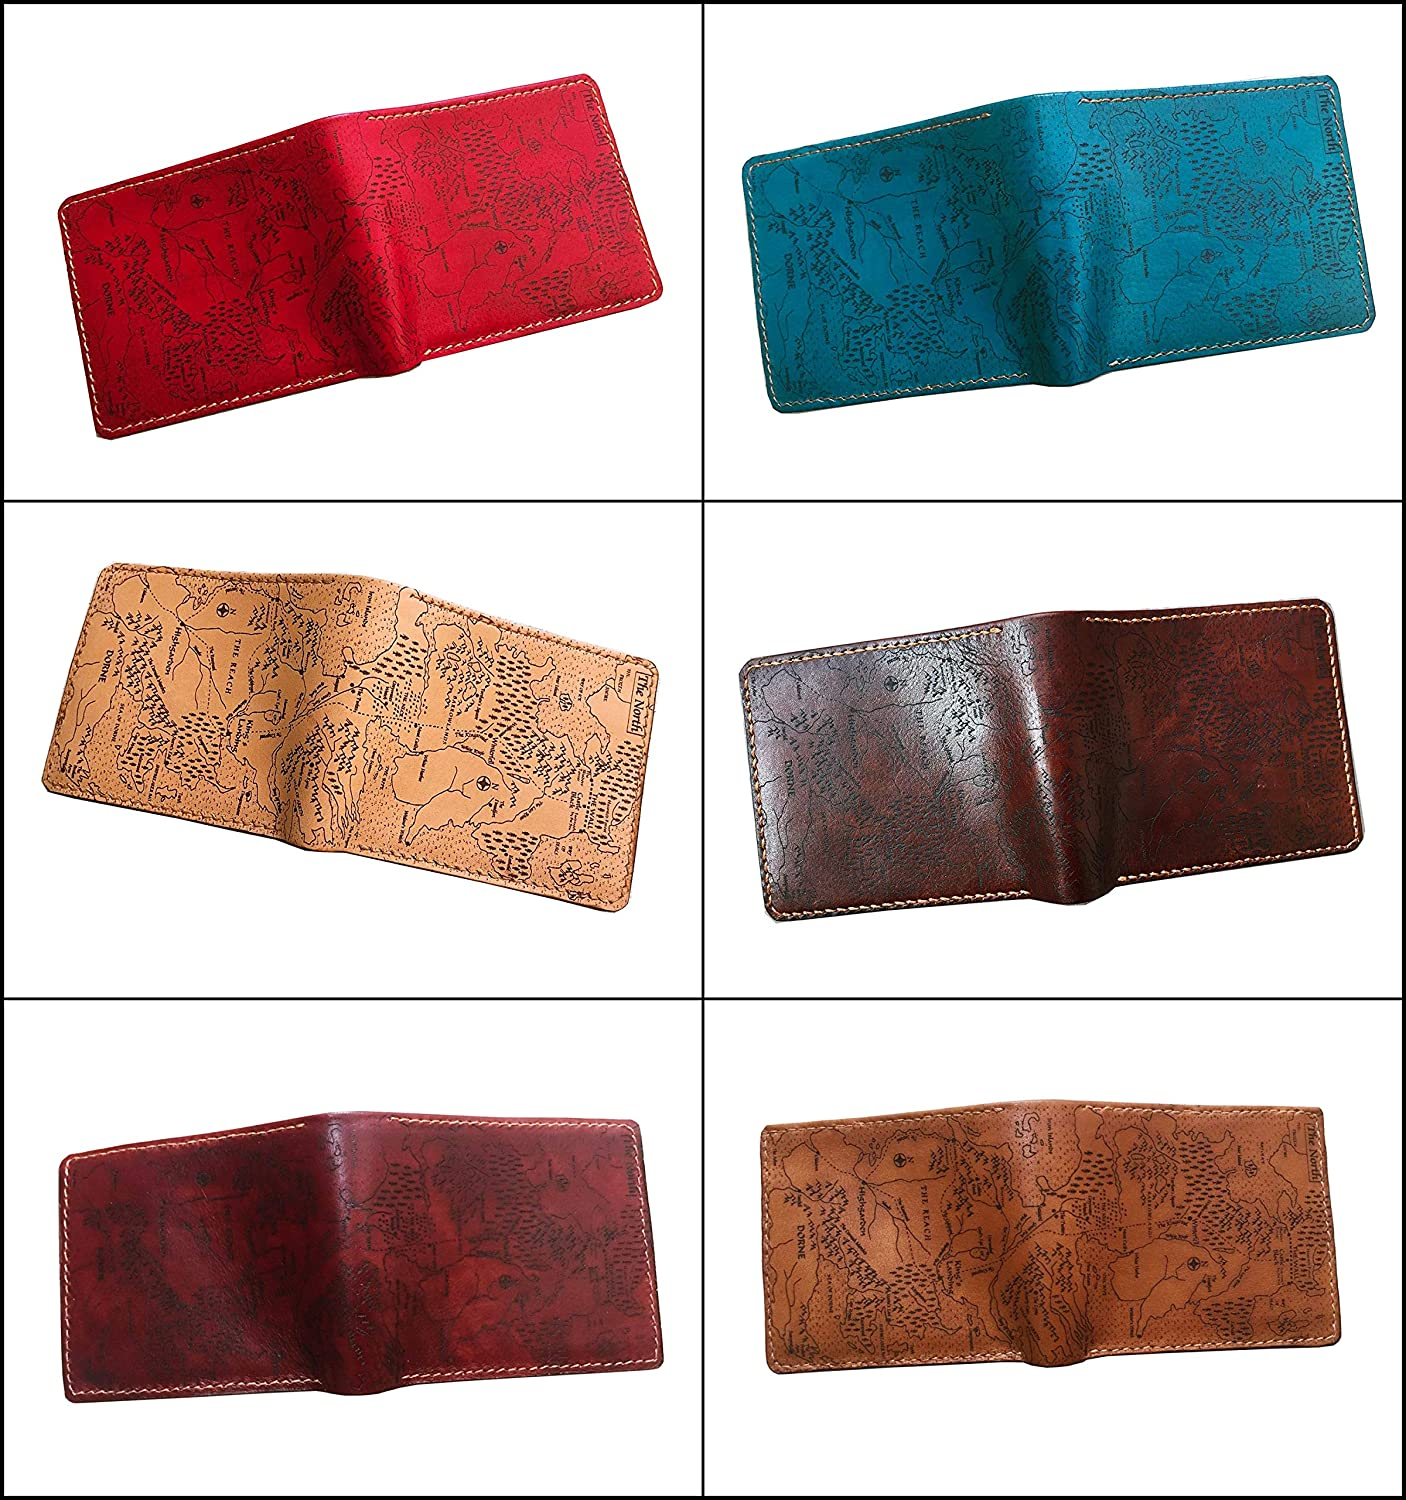 1LE Unik4art gift for men Game of Thrones Westeros map movie series leather handmade mens bifold wallet